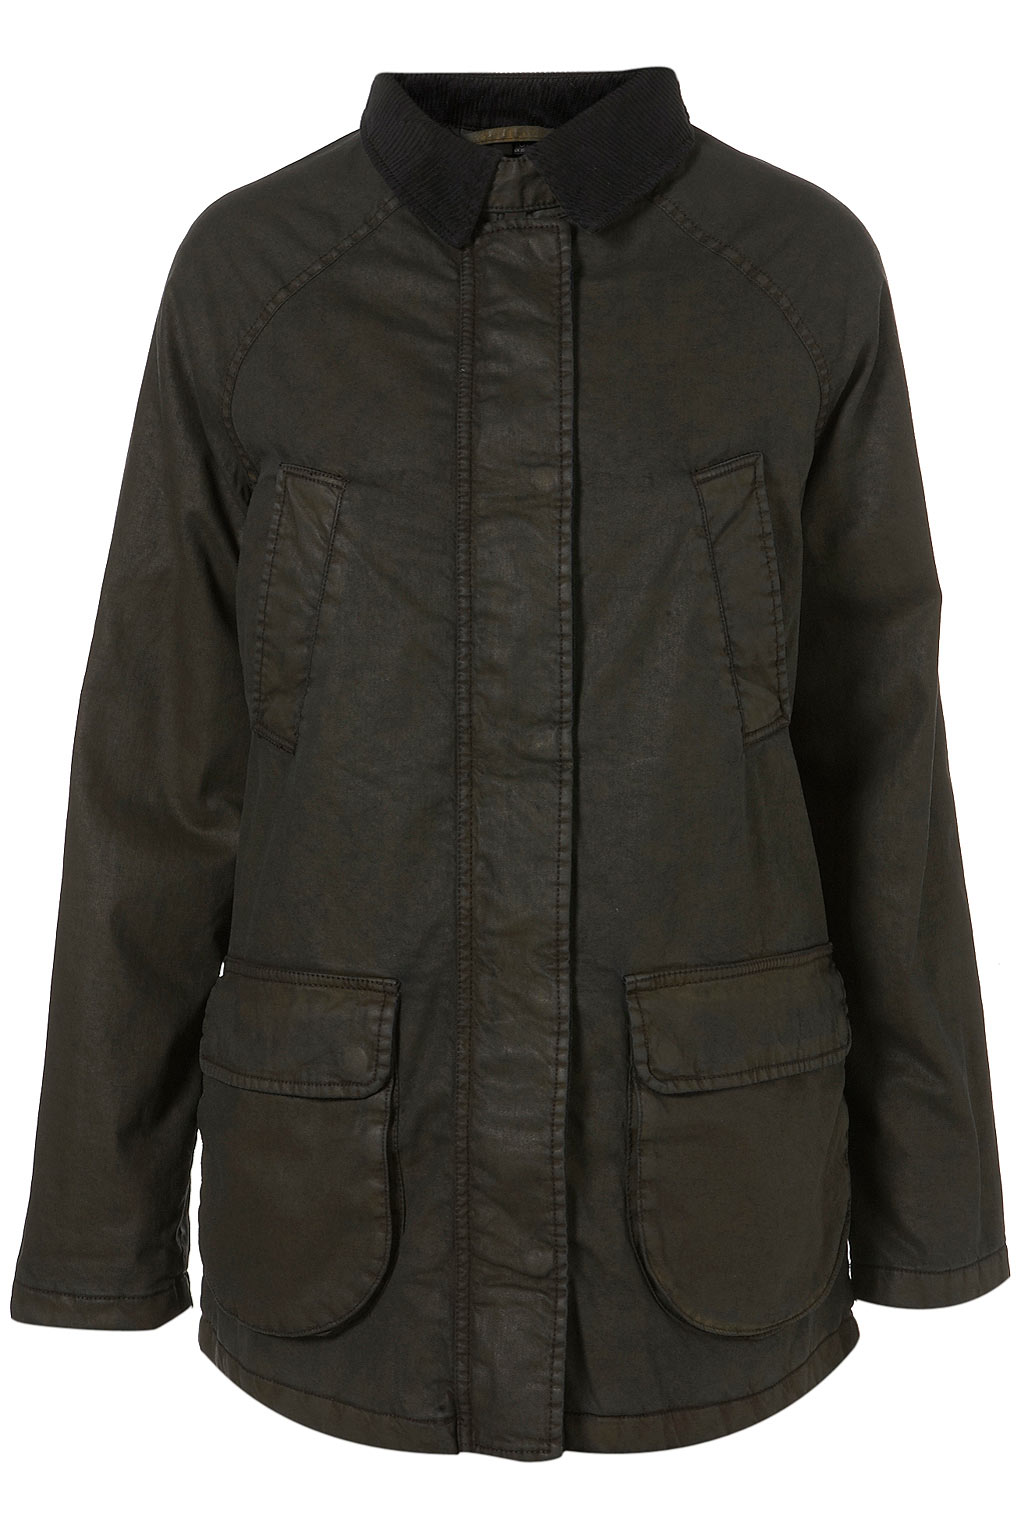 Topshop Waxed Parka Jacket in Natural | Lyst